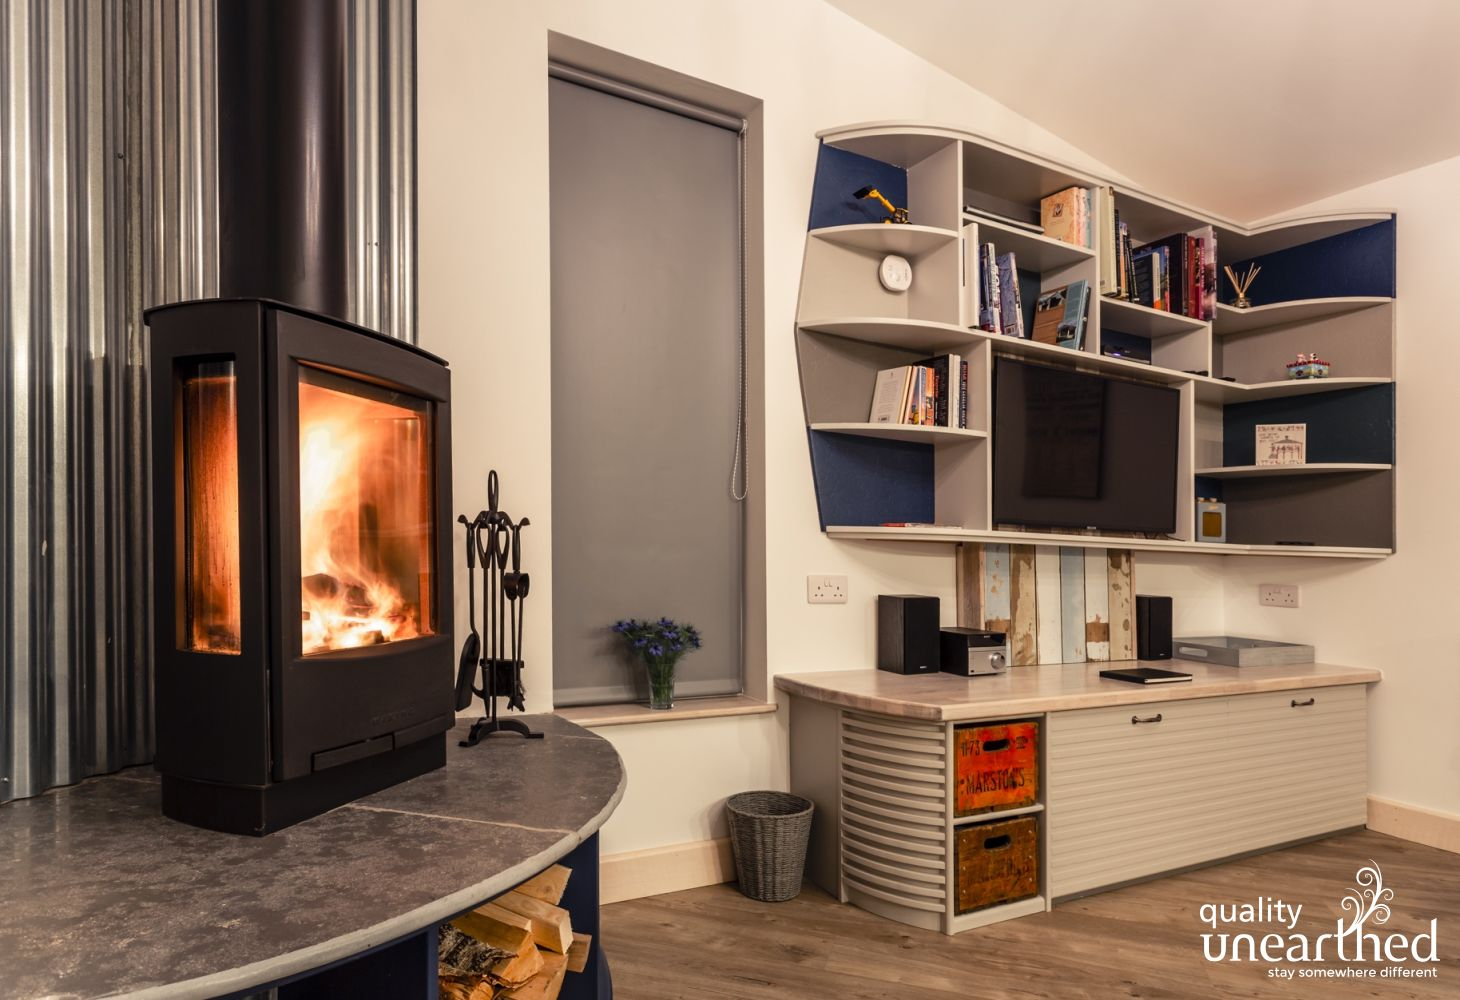 A contemporary log burner adds to this cosy wooden cabin. A smart TV sits in a bookshelf with a music system